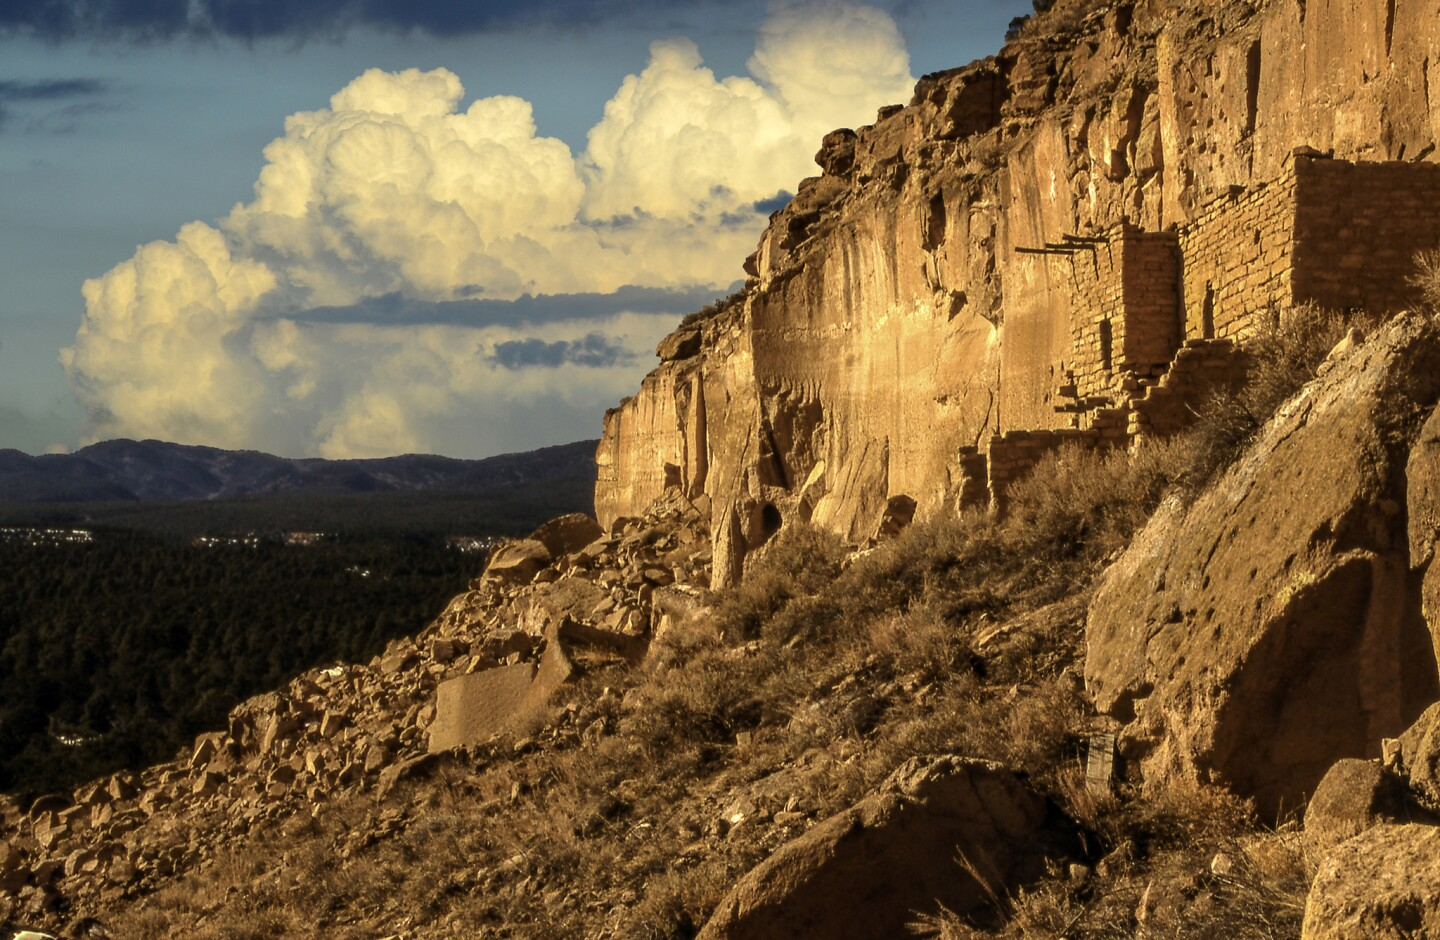 A look at the Puye Cliffs.